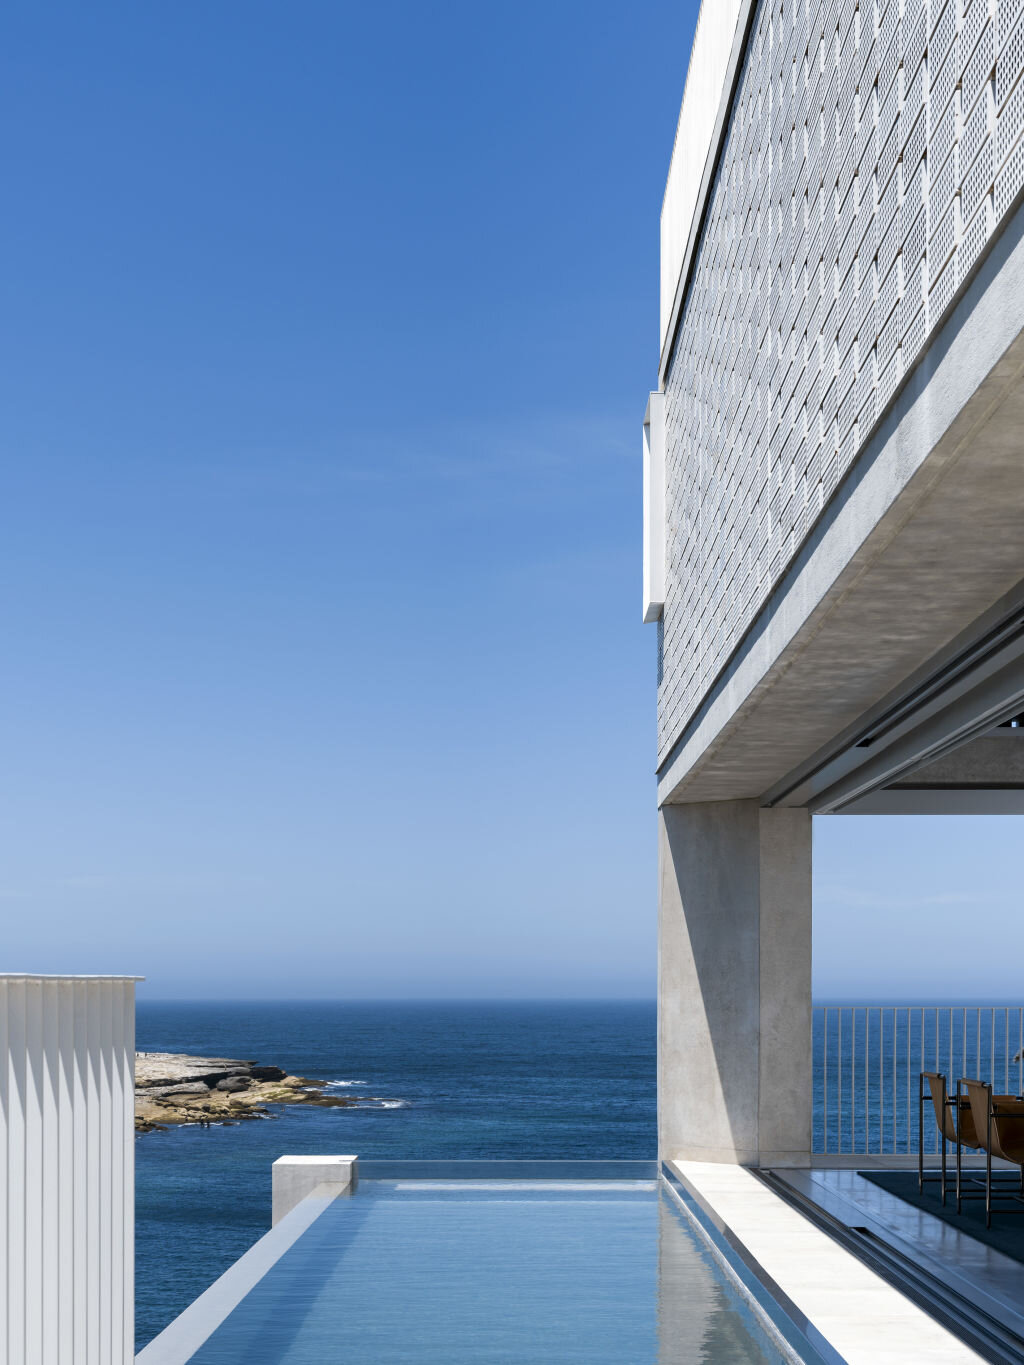 GB House by Renato D'Ettore took out top prize at the NSW AIA Awards. Photo: Justin Alexander